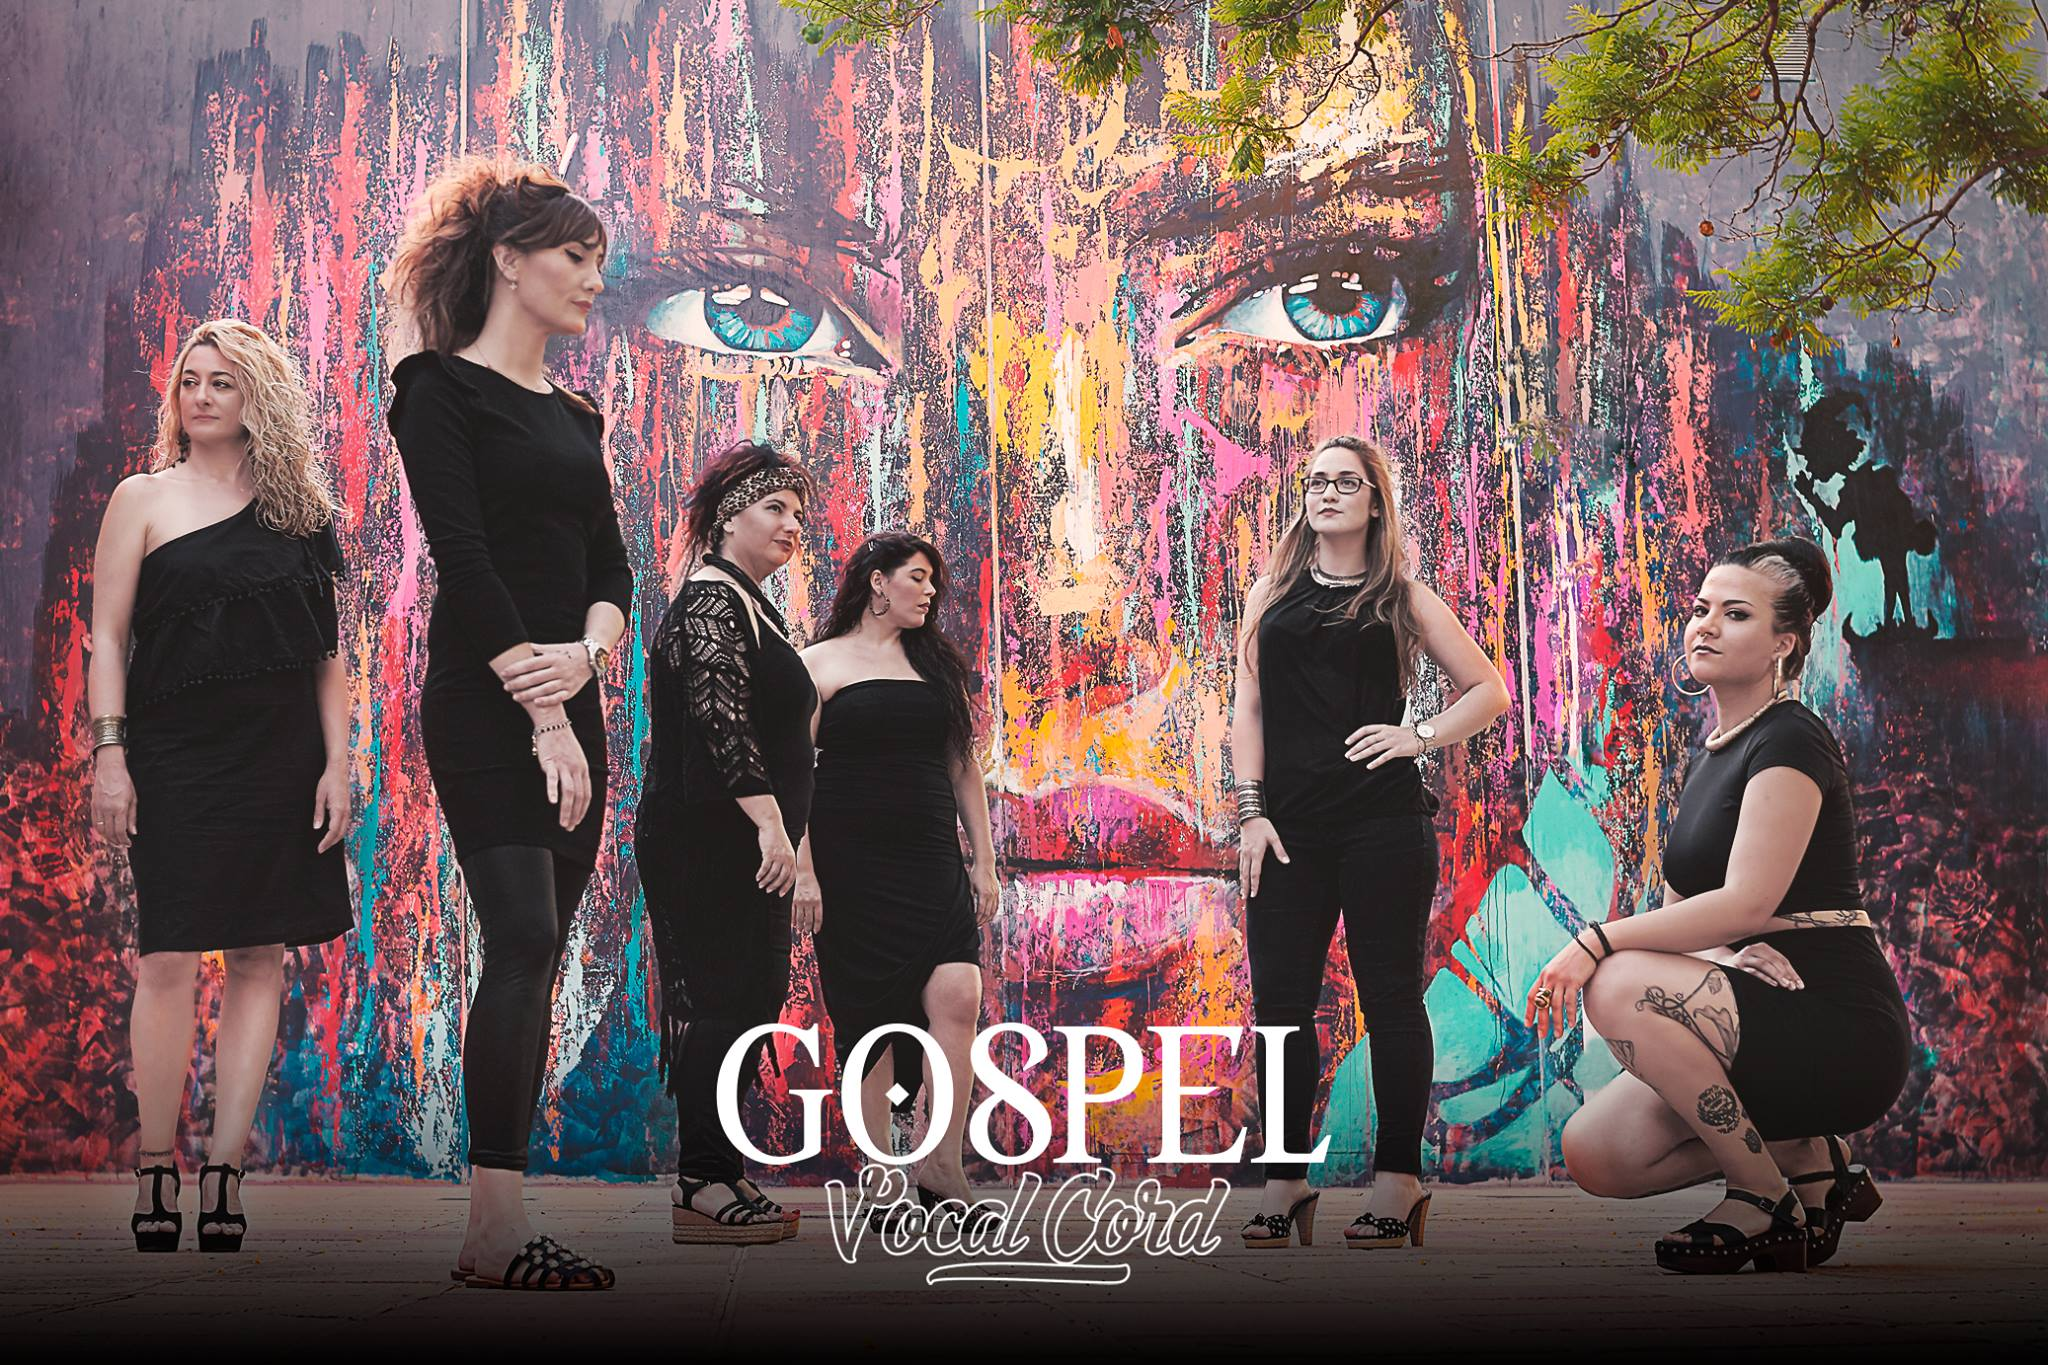 Gospel Vocal Cord